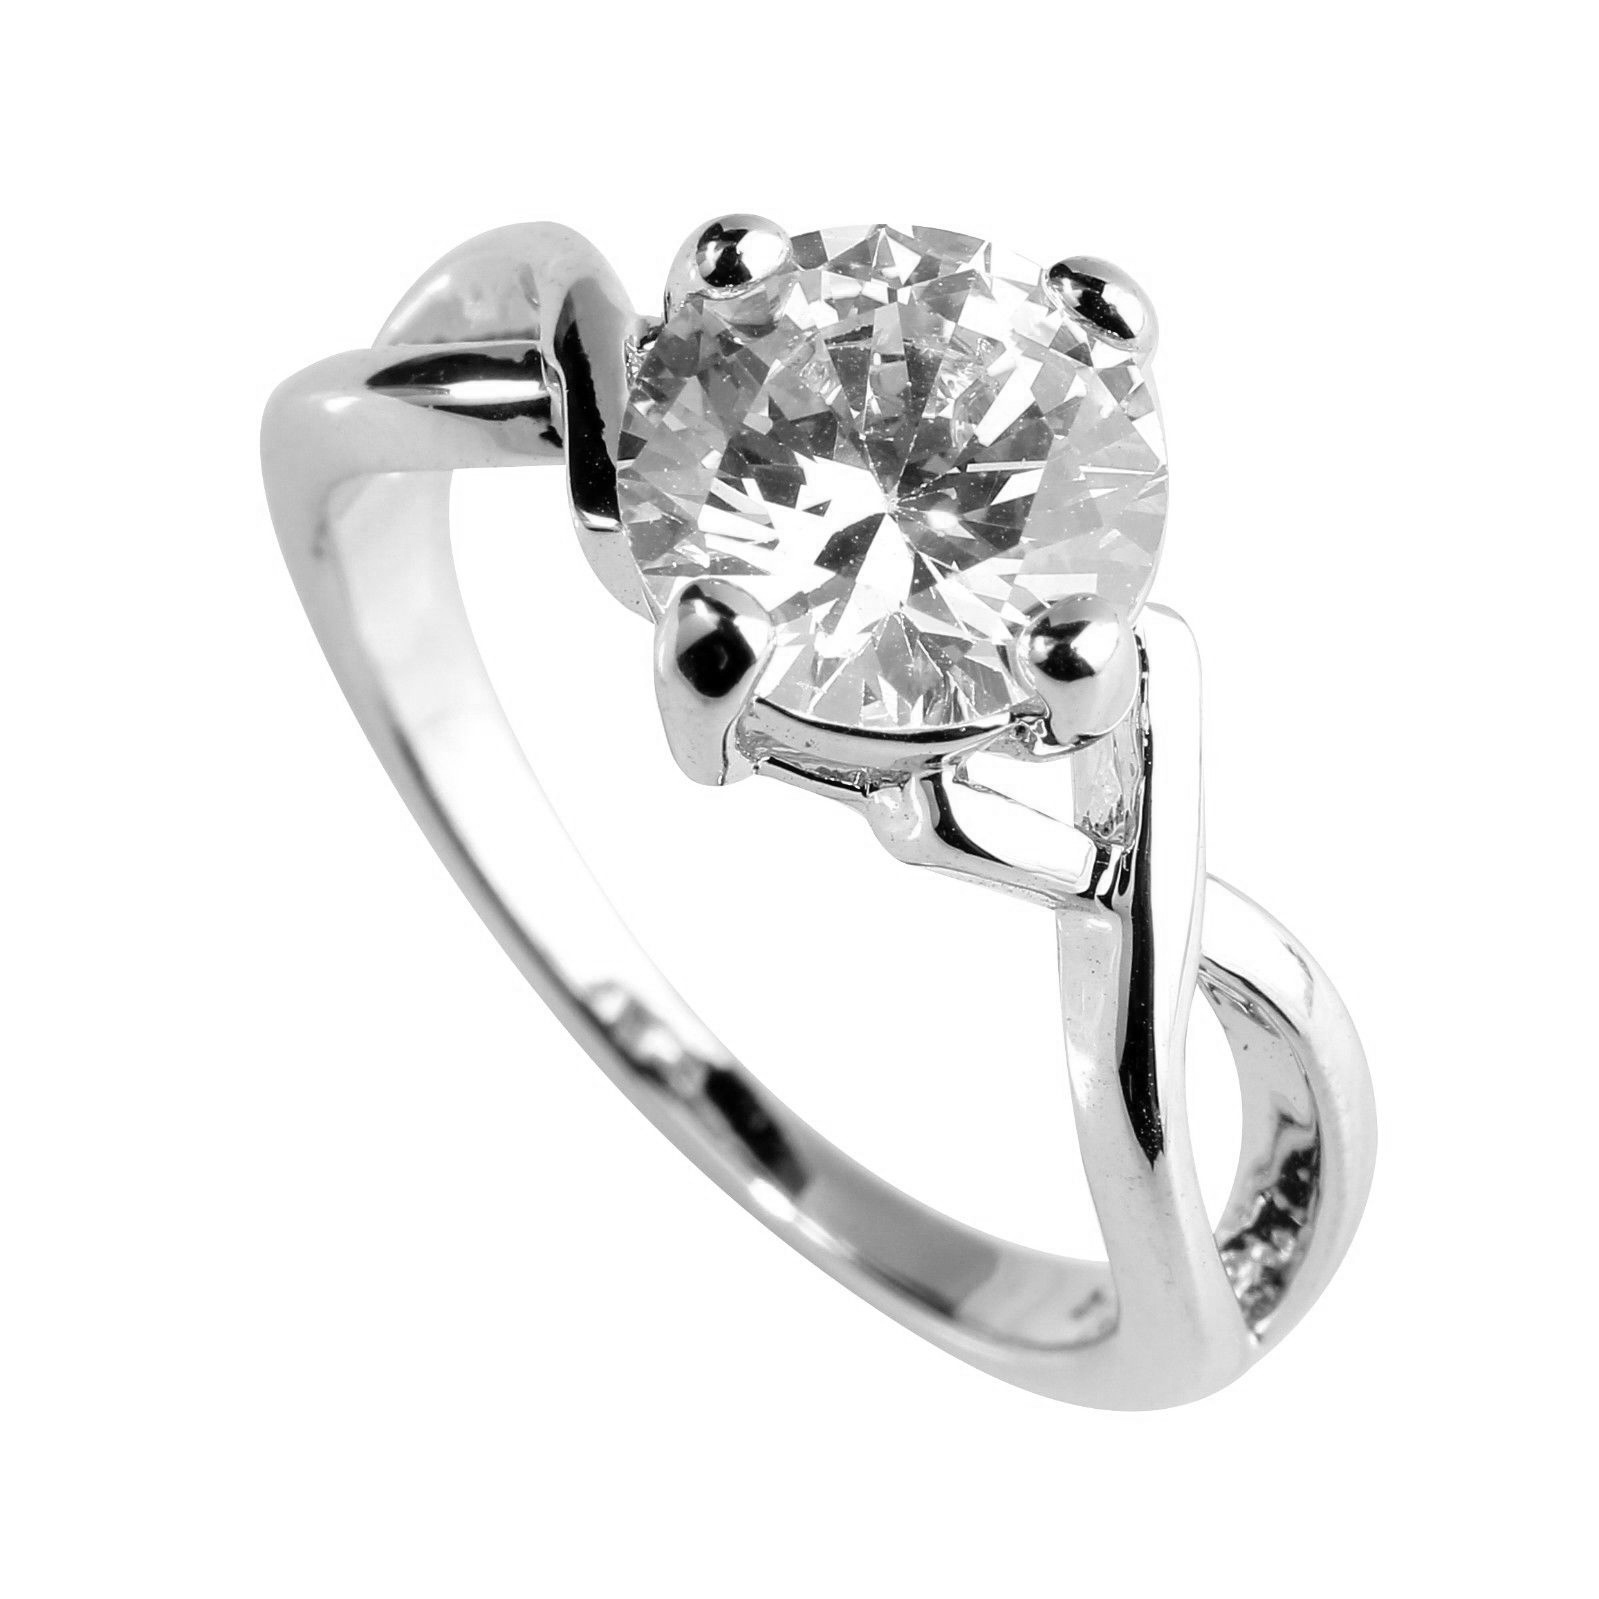 Cubic Zirconia 4 Claw Ring Silver Size 8